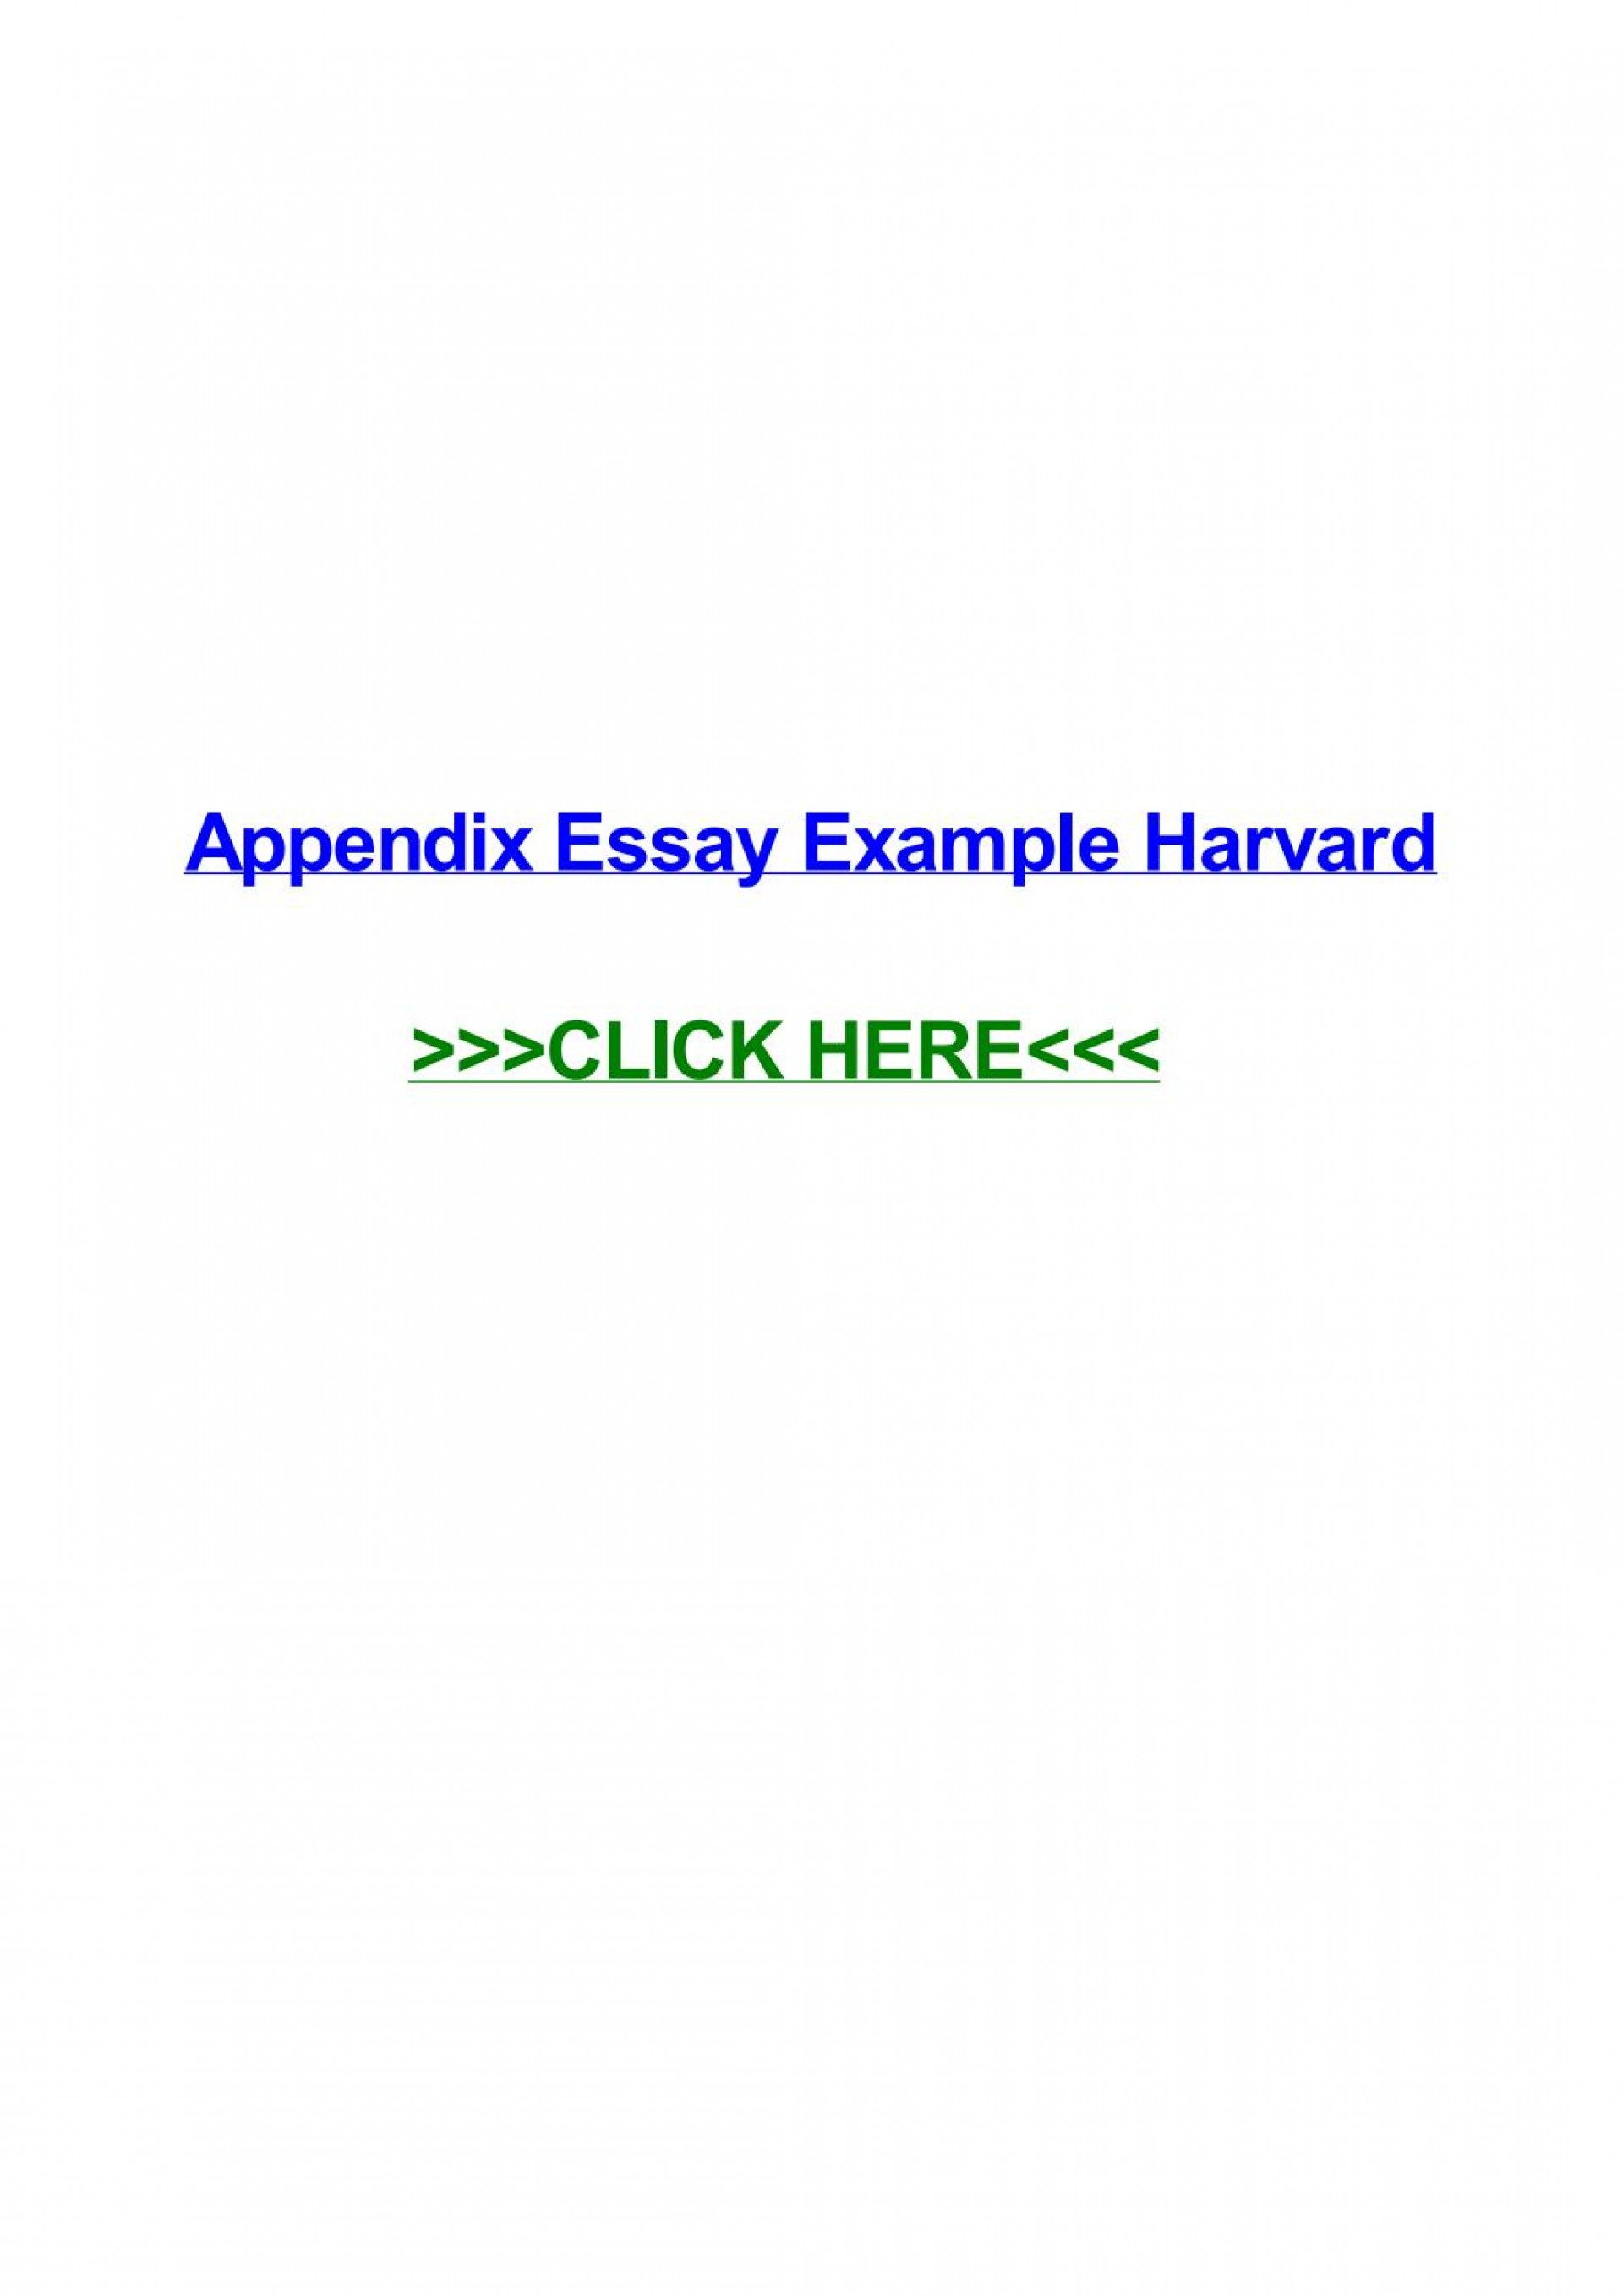 009 Essay Example Appendix Page 1 Remarkable Harvard Meaning History 1920